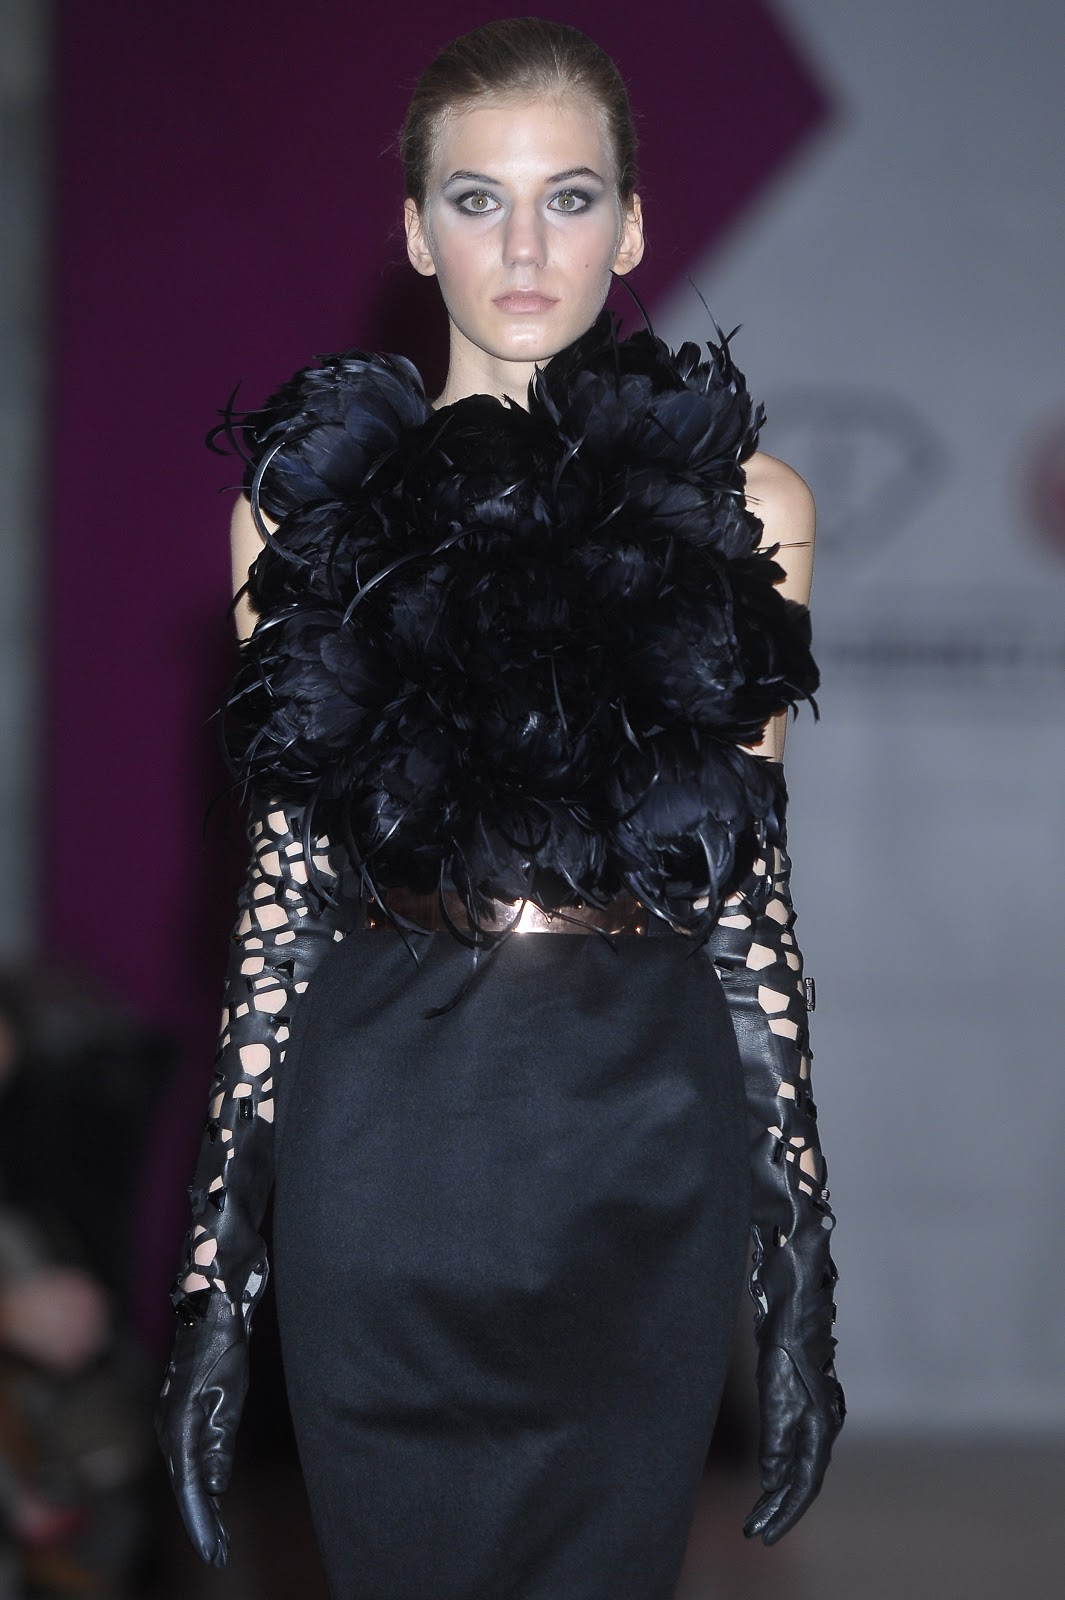 akpa20130130_lg_fashion_tv_2714.jpg